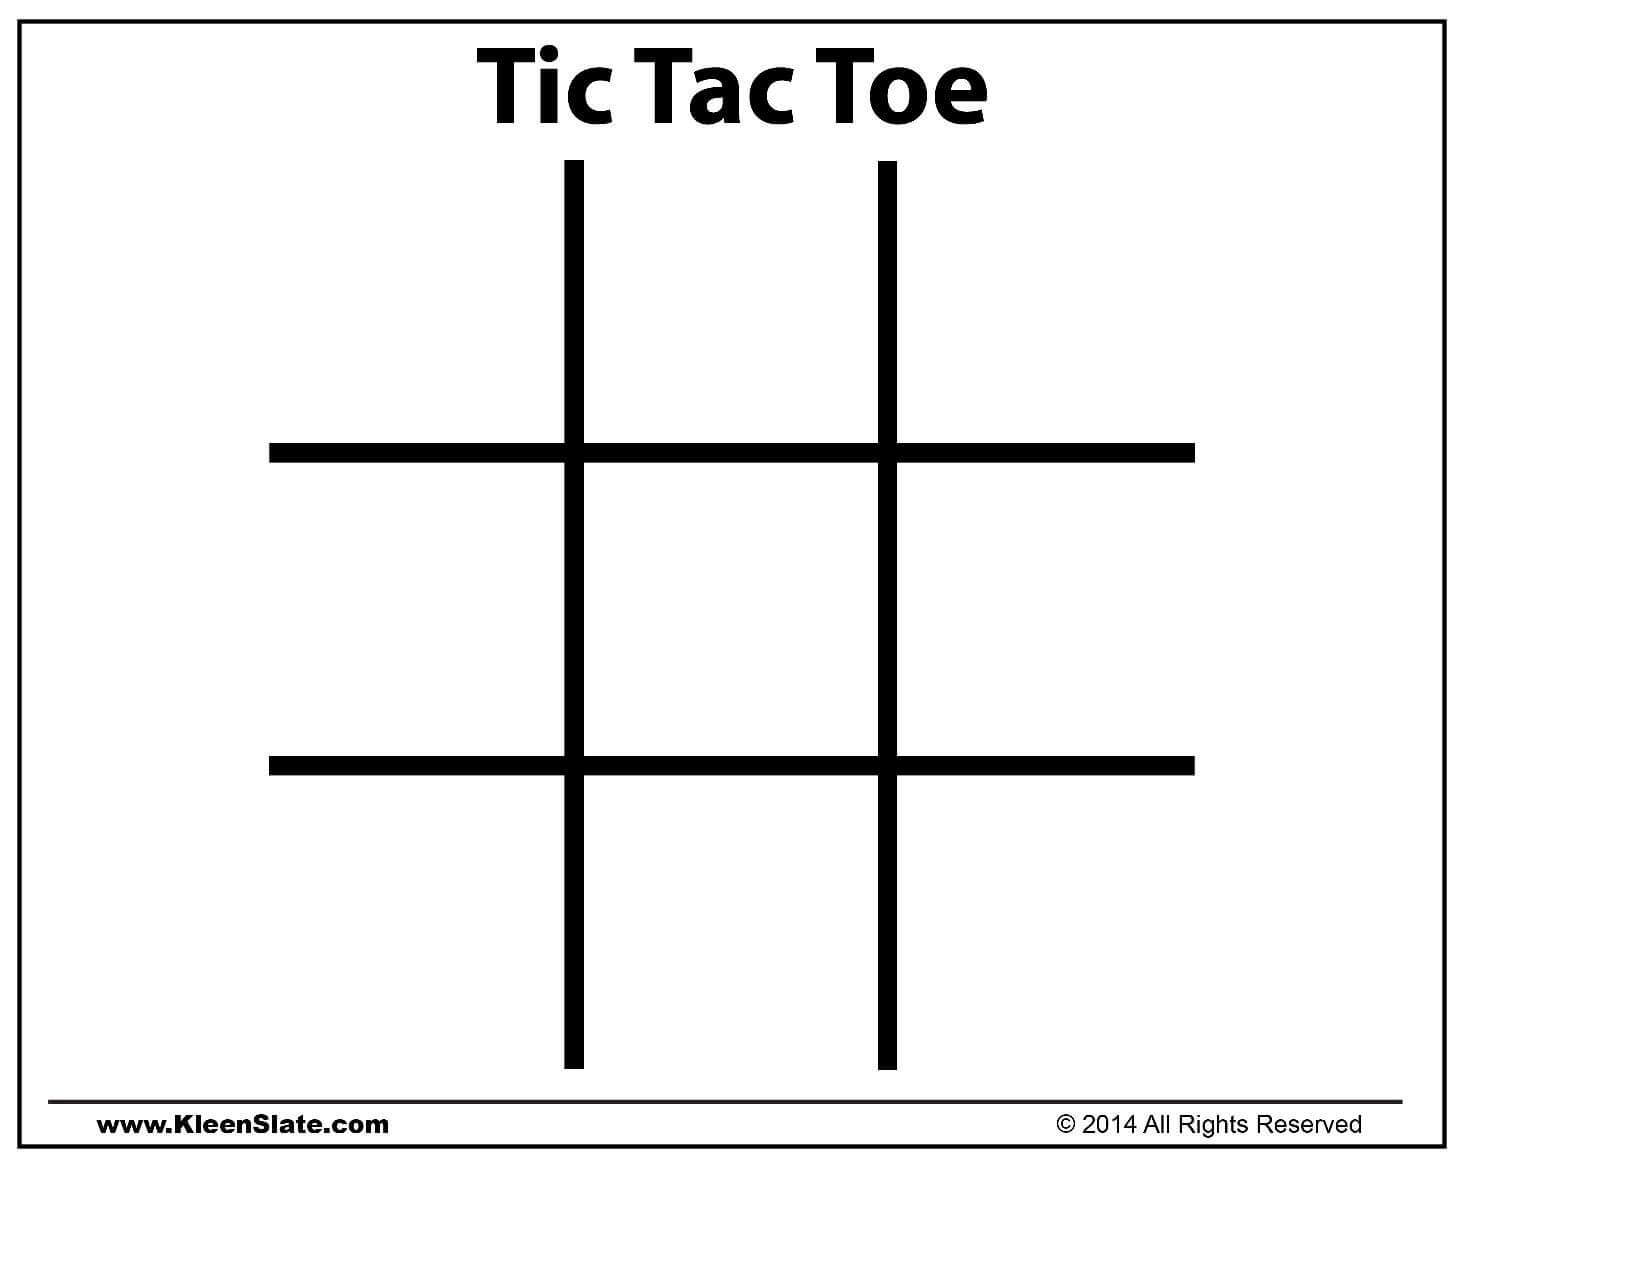 Tic Tac Toe Template | Trafficfunnlr Intended For Tic Tac Intended For Tic Tac Toe Template Word